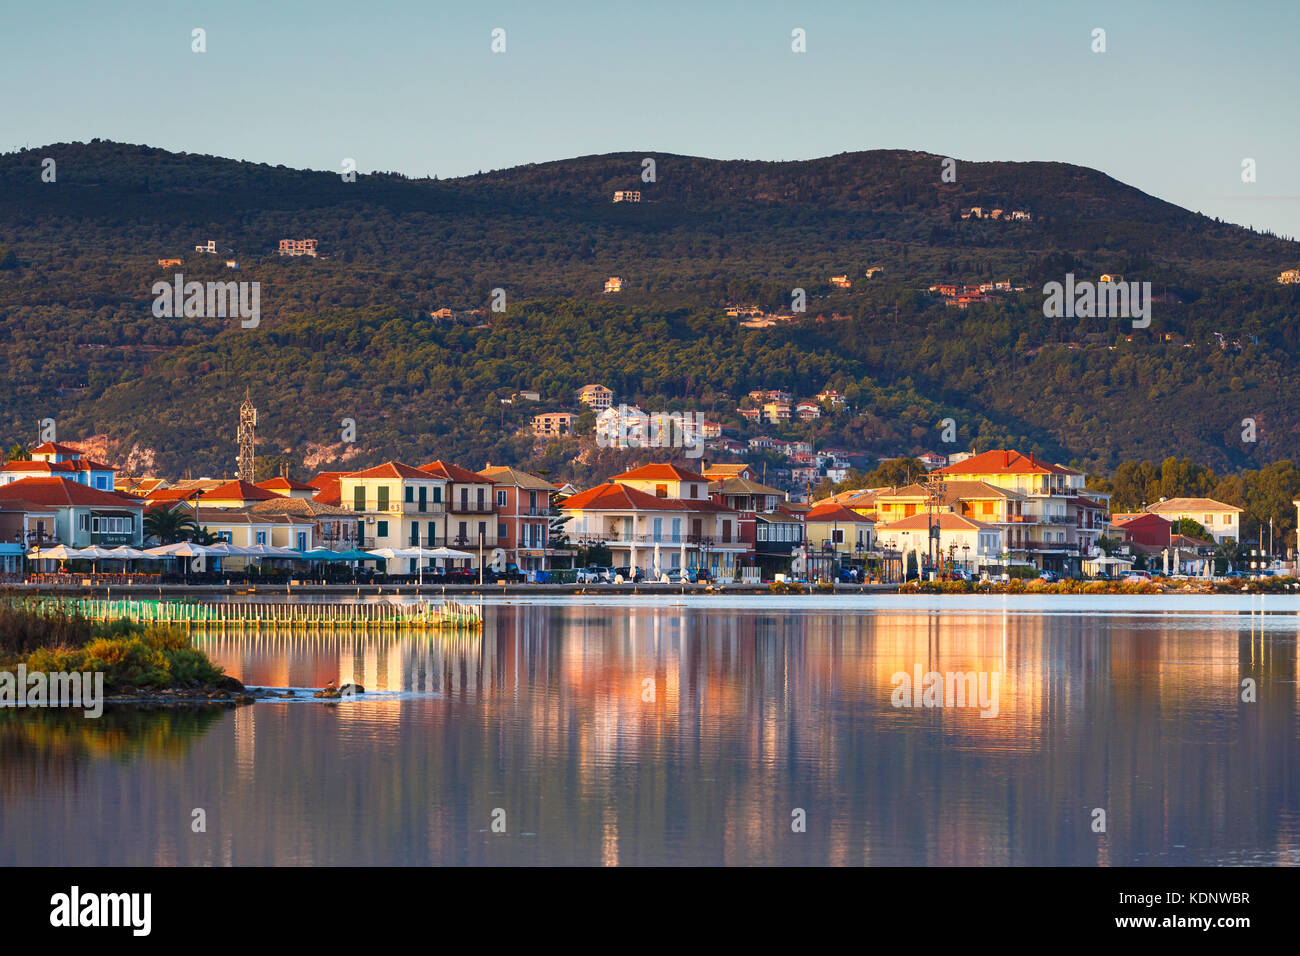 Town of Lefkada as seen over the lagoon from a distance, Greece. - Stock Image